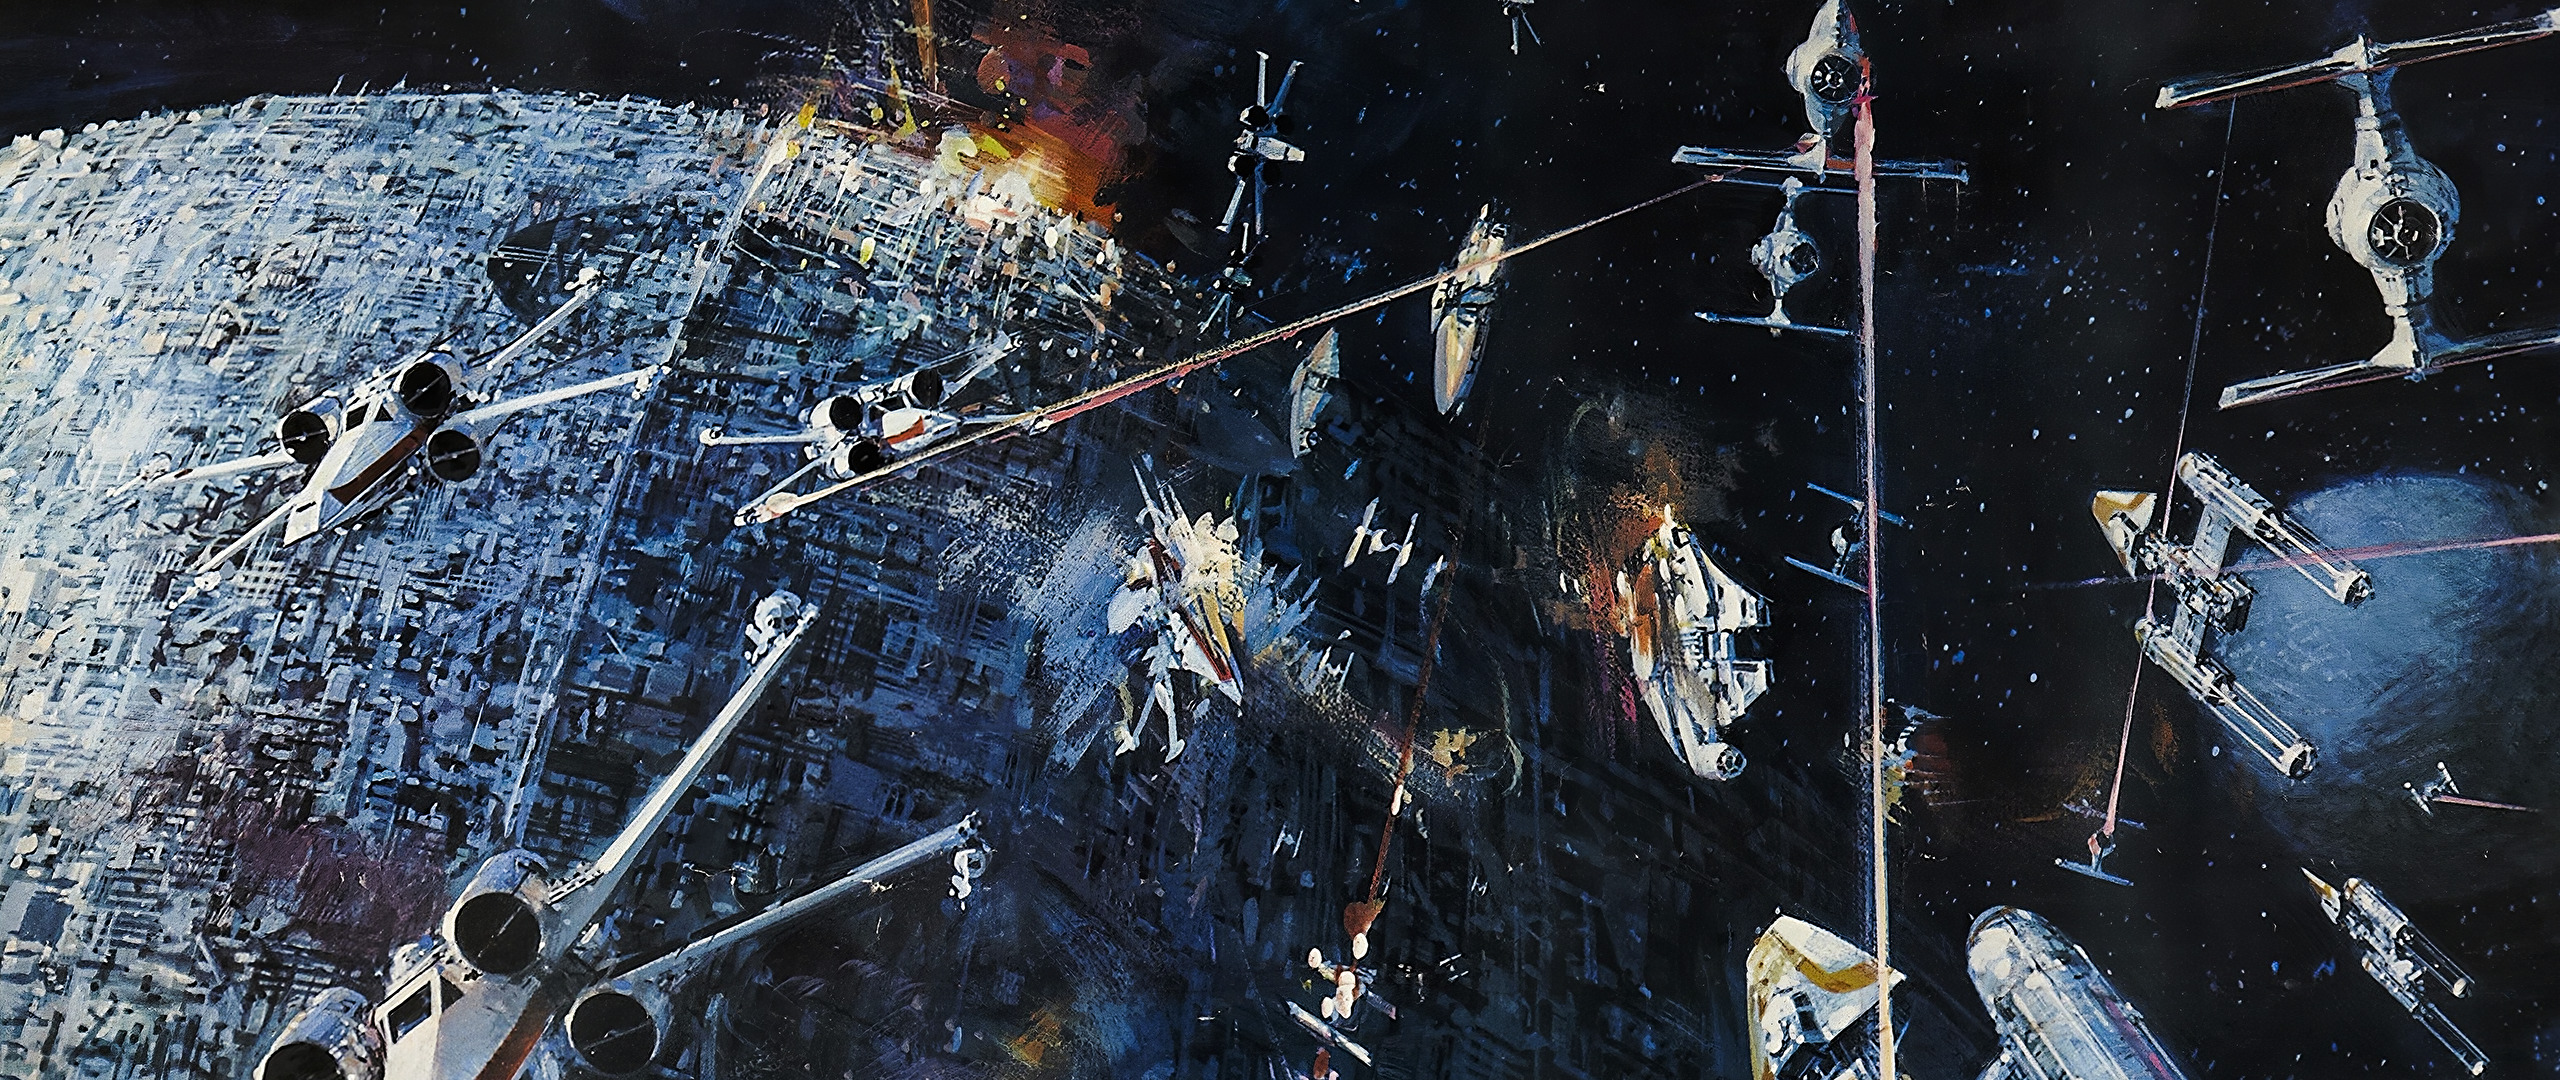 Star Wars Poster By John Berkey 1977 3840x2160 Wallpapers